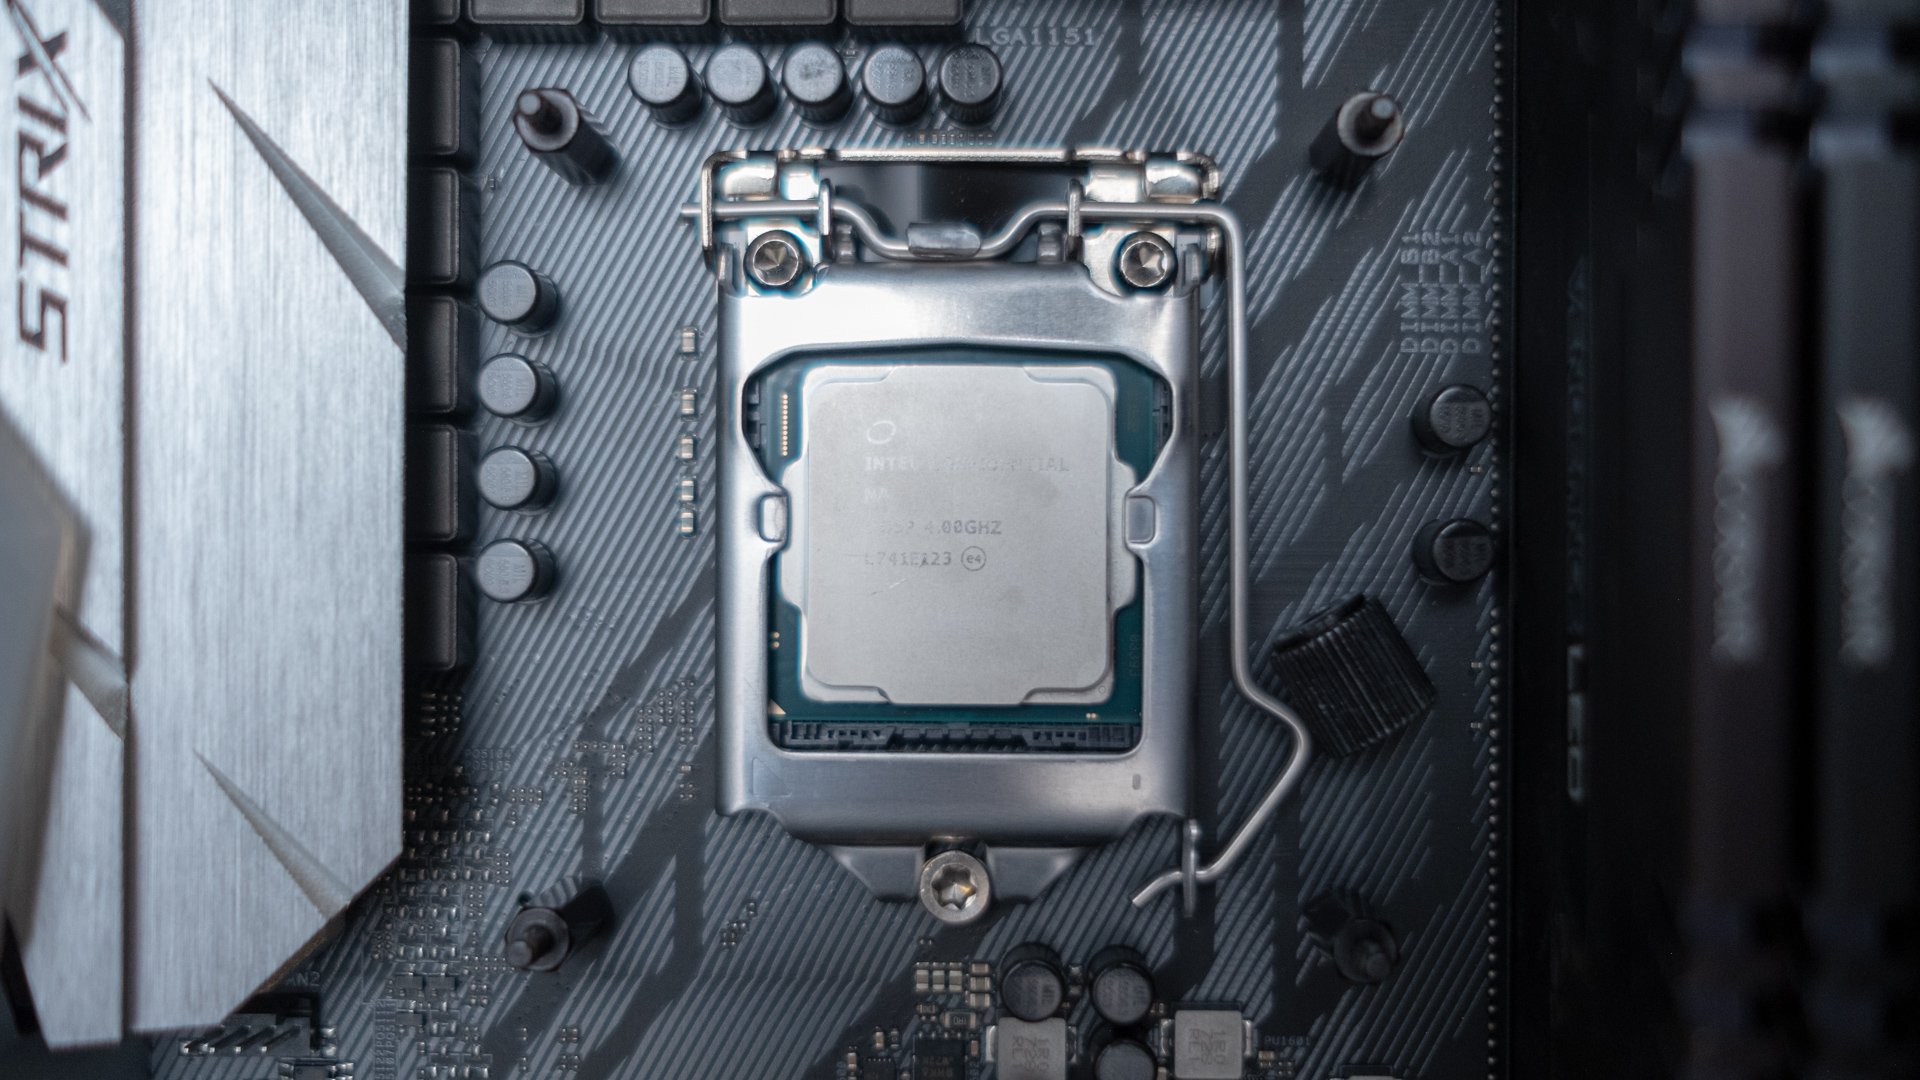 Intel Core i9-9900K leaked benchmark leaves AMD Ryzen 7